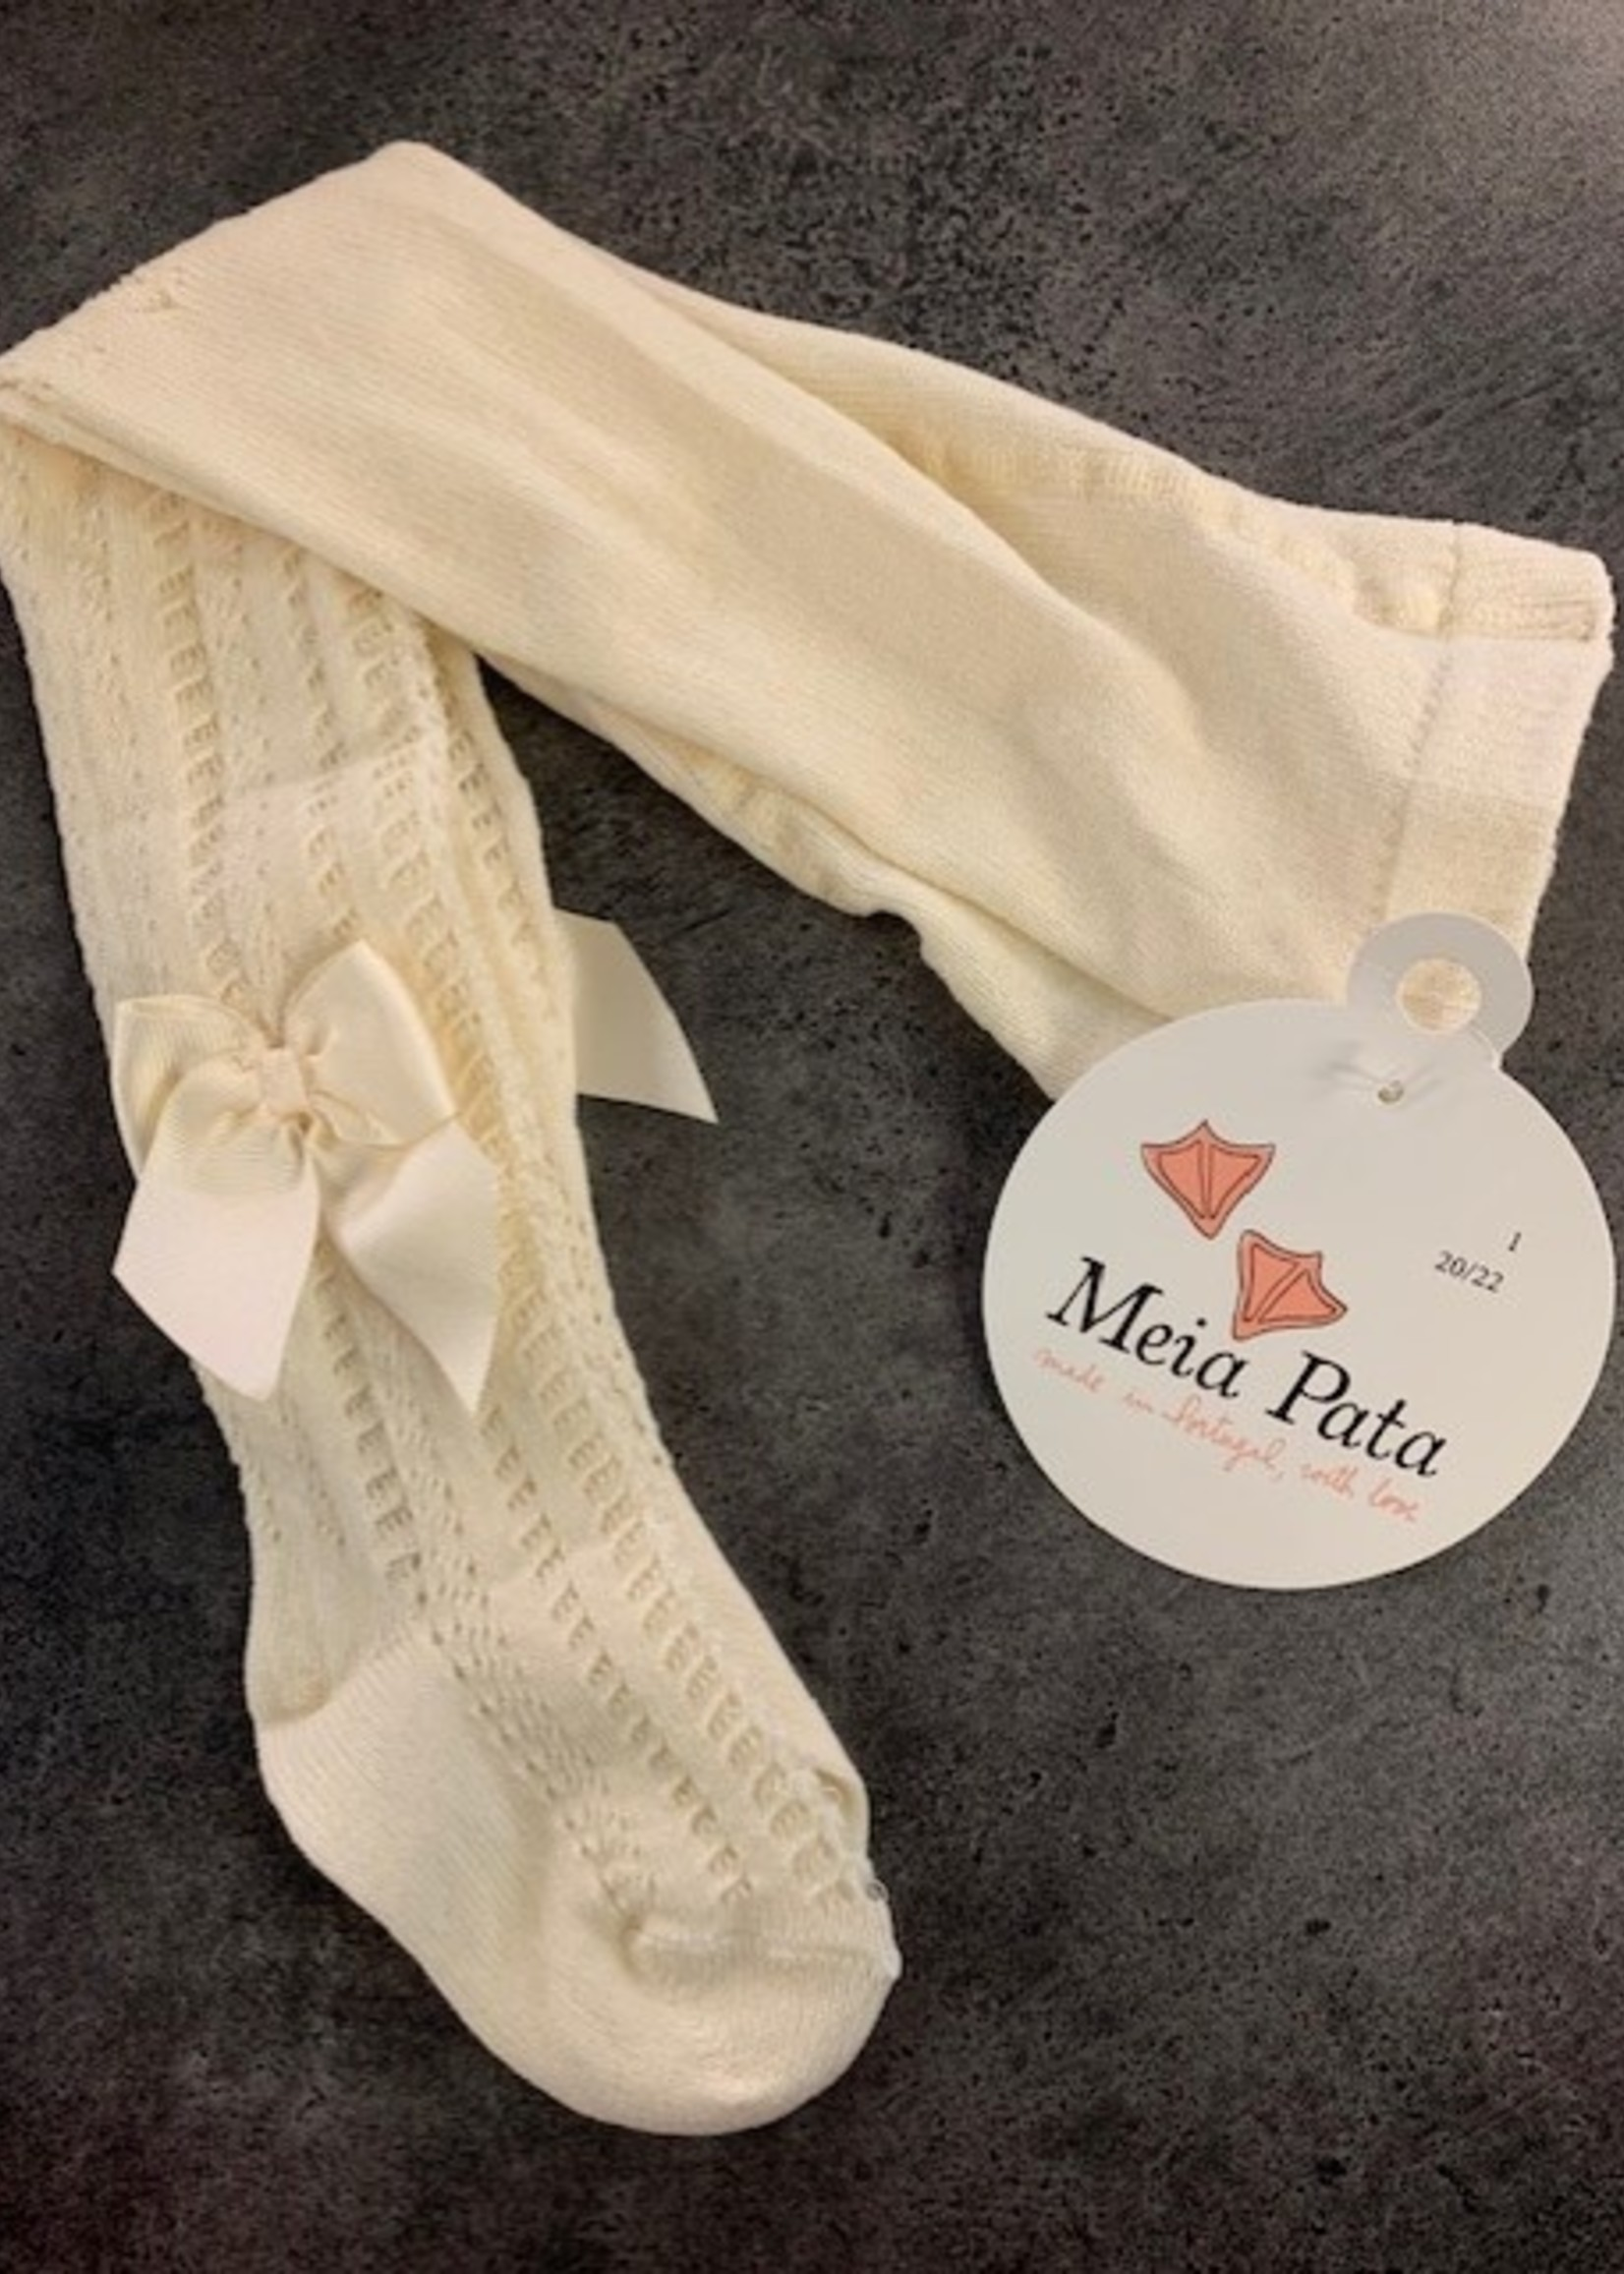 Mei pata meiepata tights with grosgrain bow